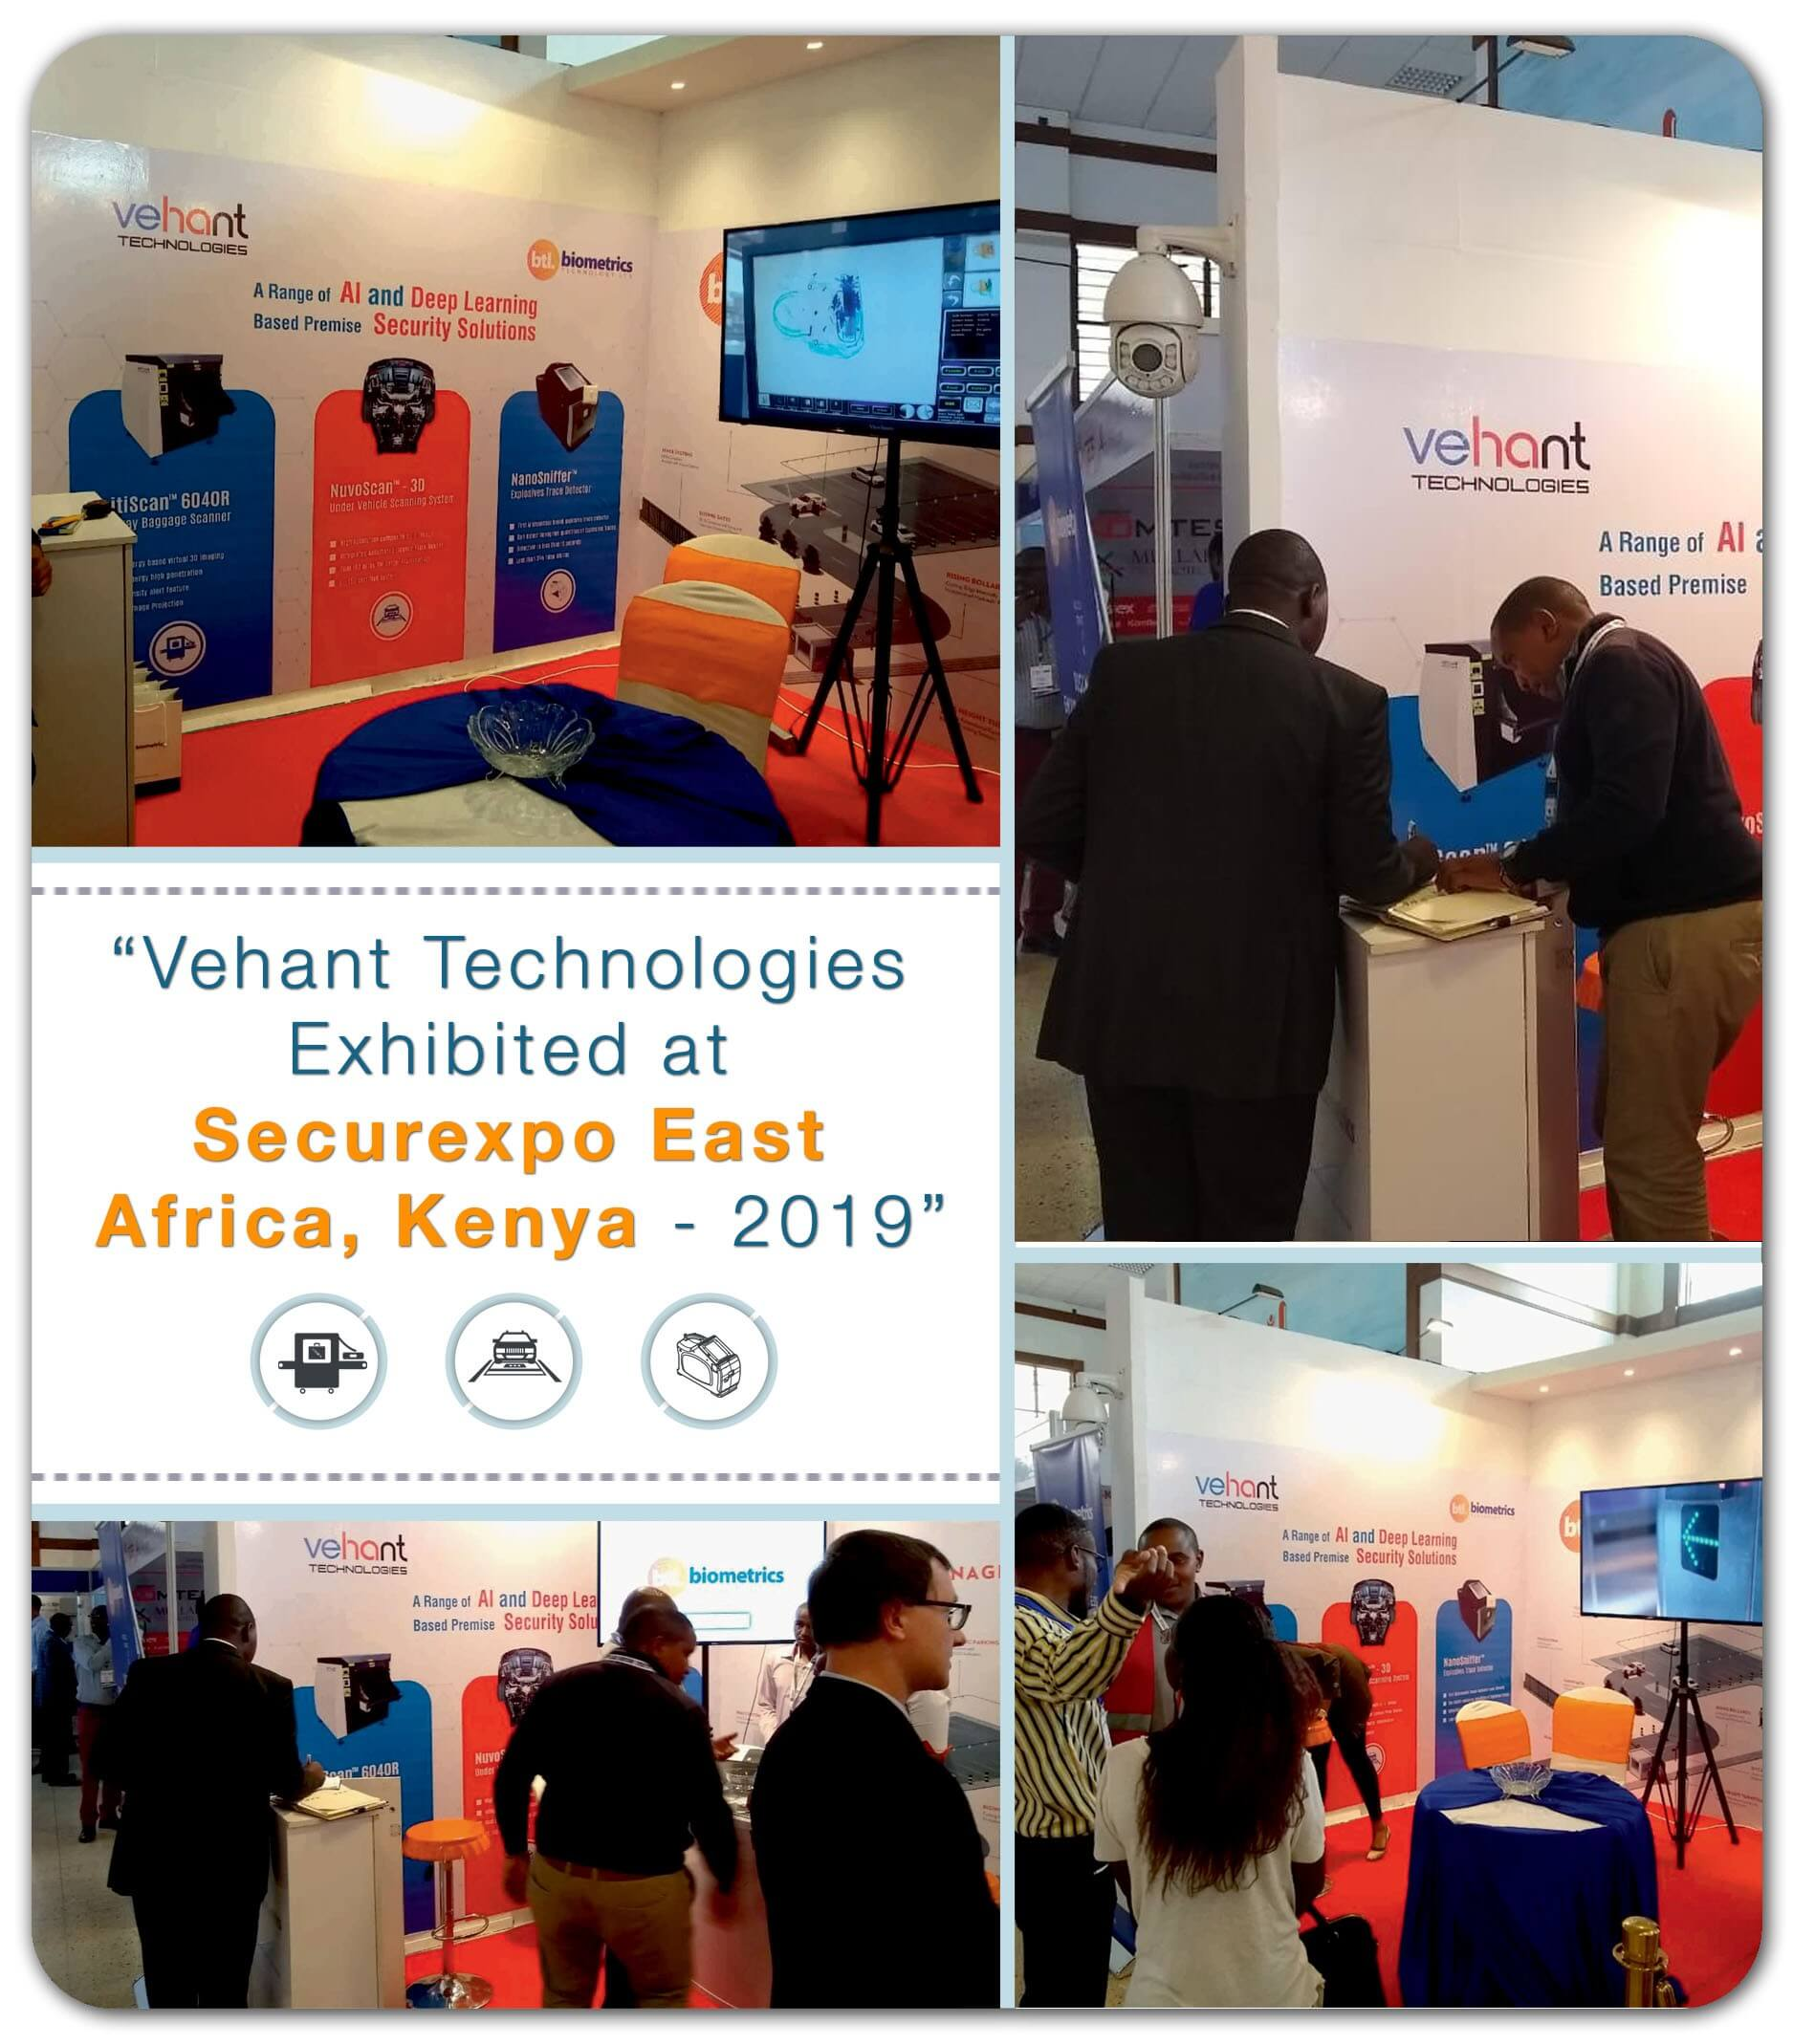 Vehant participated in Securexpo, East Africa, Kenya - 2019